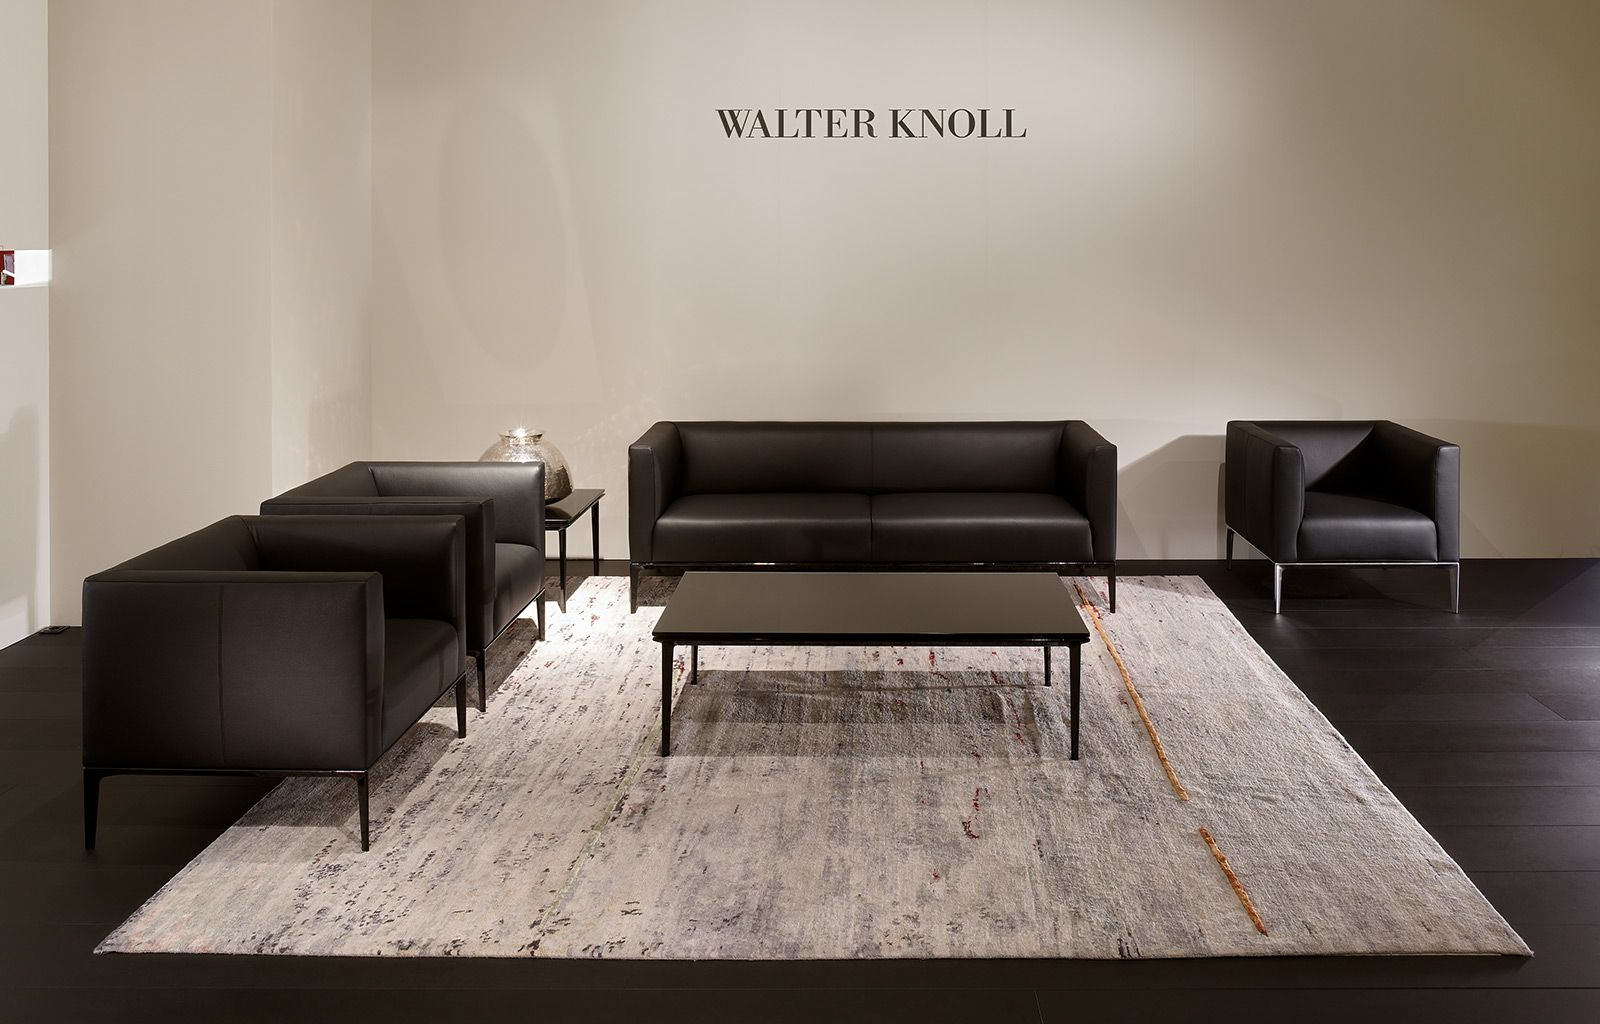 Walter knoll jaan sofa armchair table design eoos chaise pinterest armchairs Walter knoll circle sofa